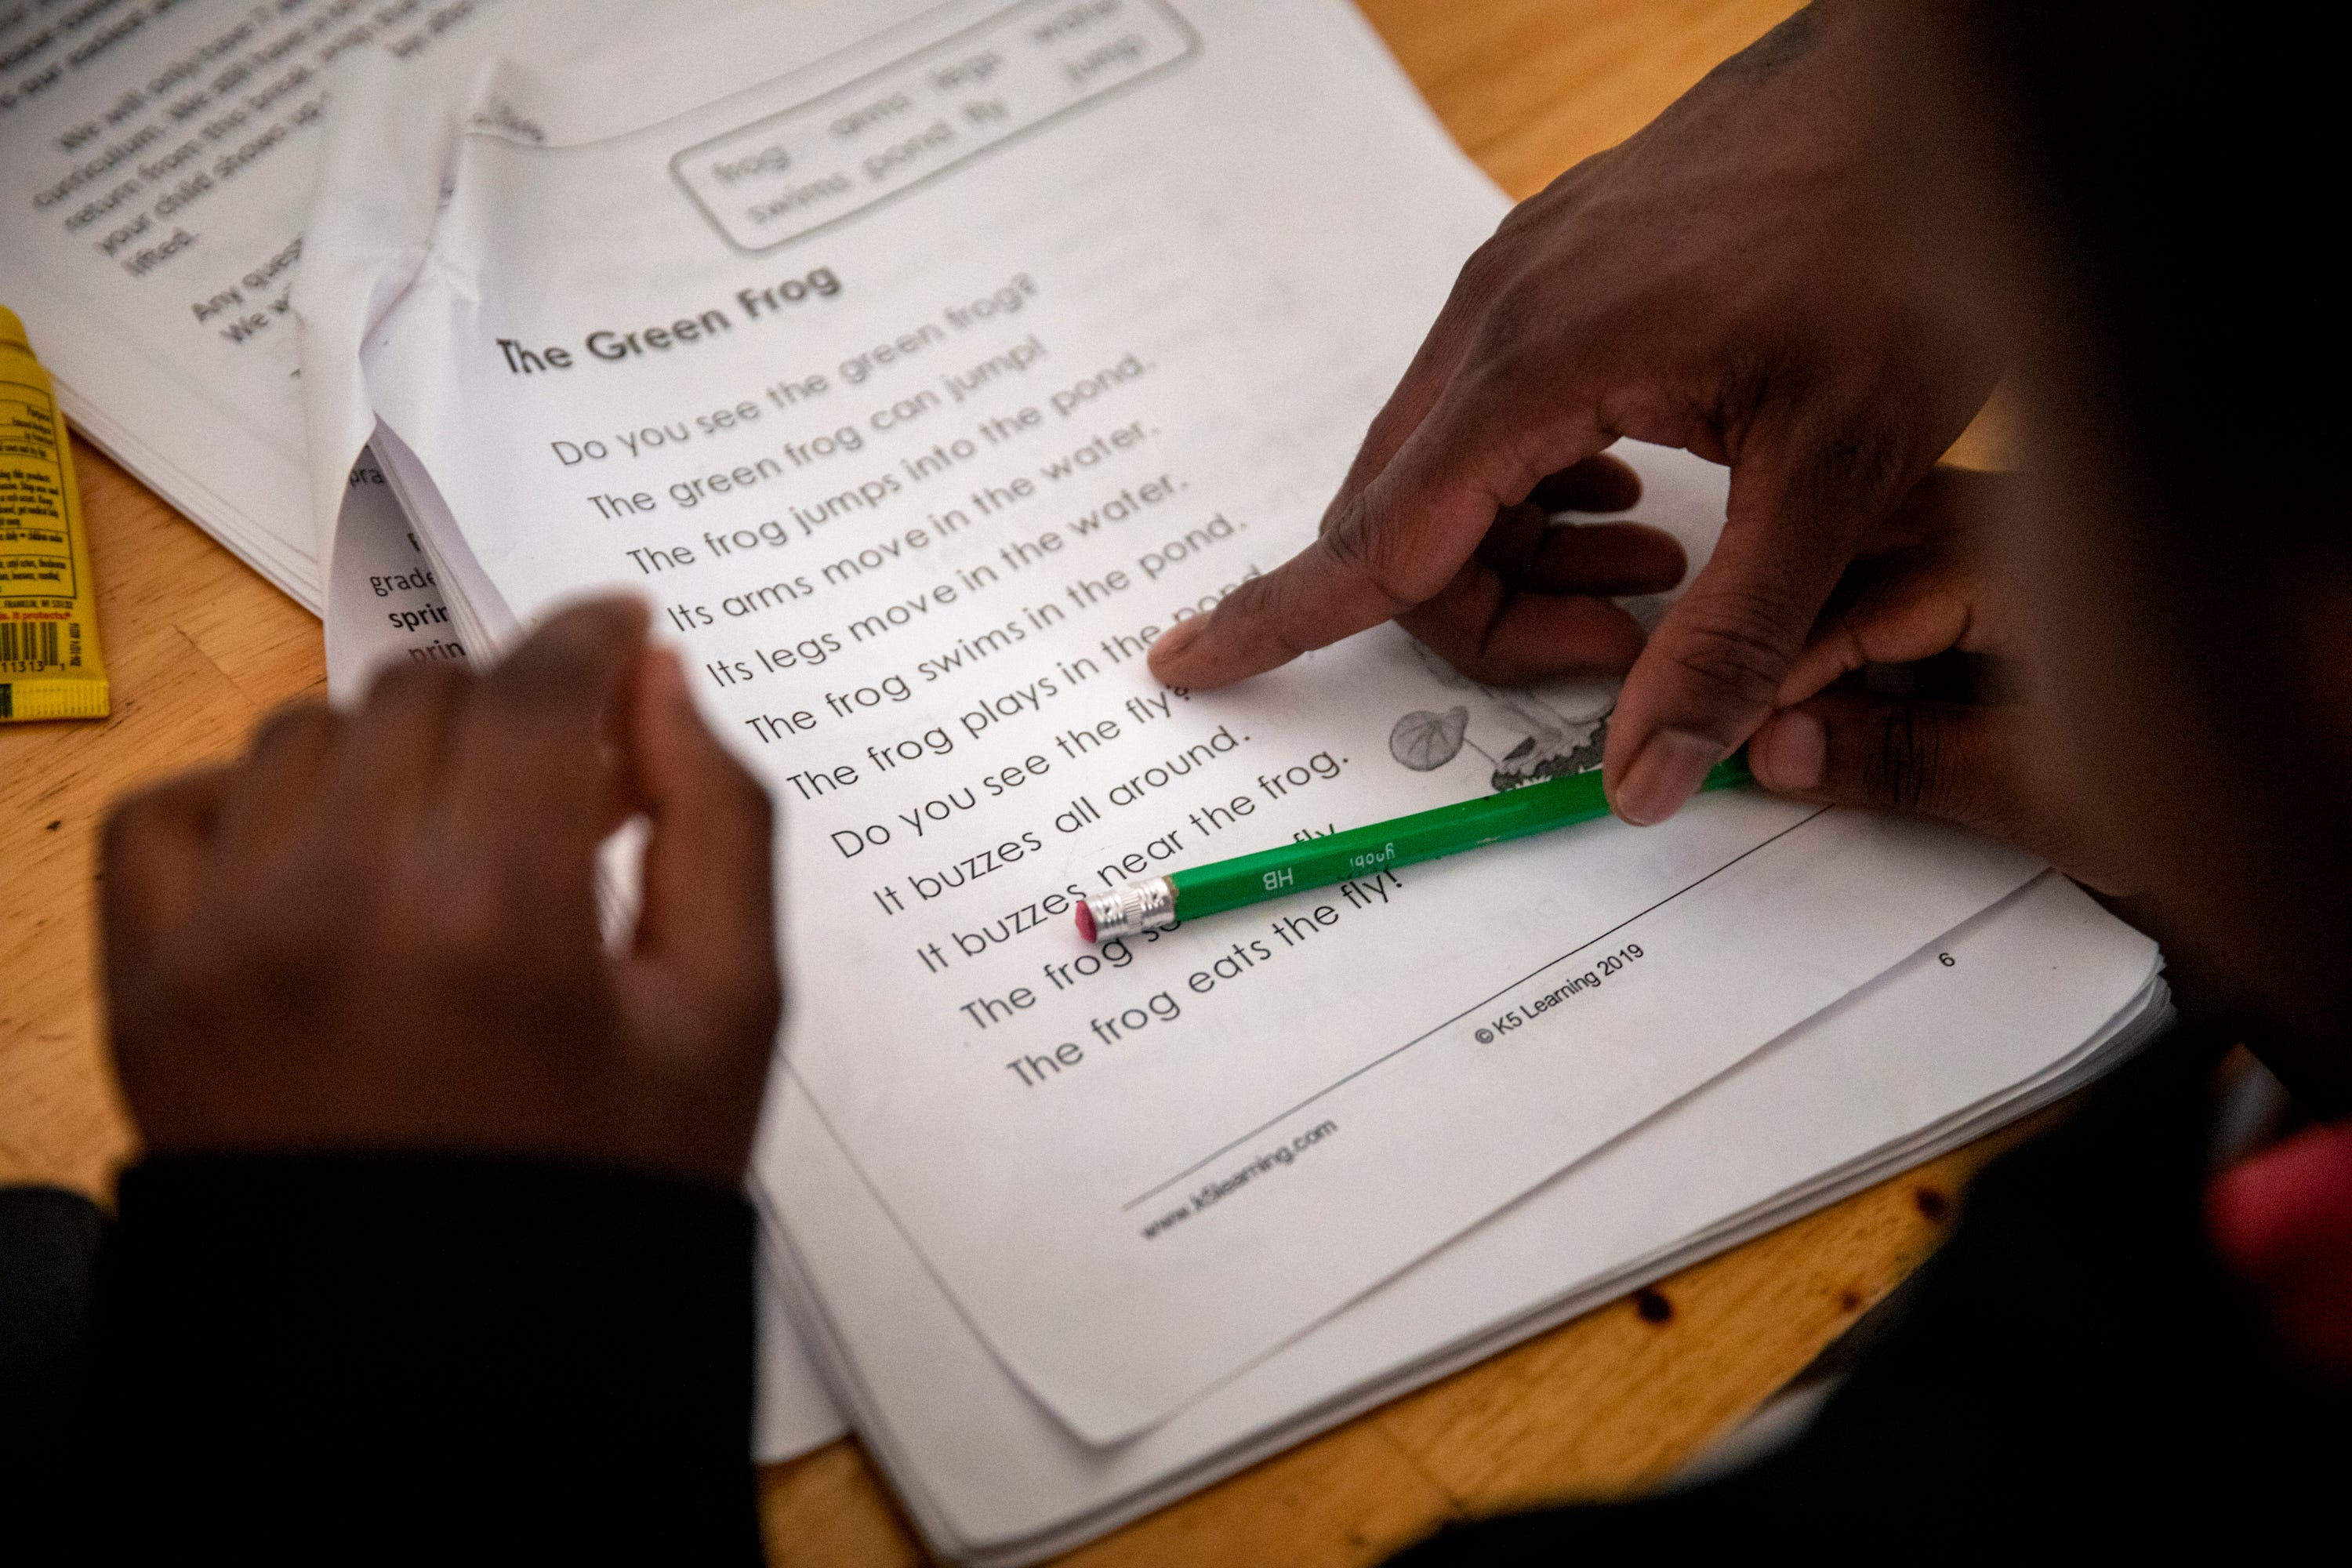 Renee Oliver helps her son Sinaca Wagoner, Jr. 7, with his school work in their apartment in Lower Price Hill on Thursday, April 2, 2020. Sinaca Jr. is in the second grade at Cincinnati College Preparatory Academy.